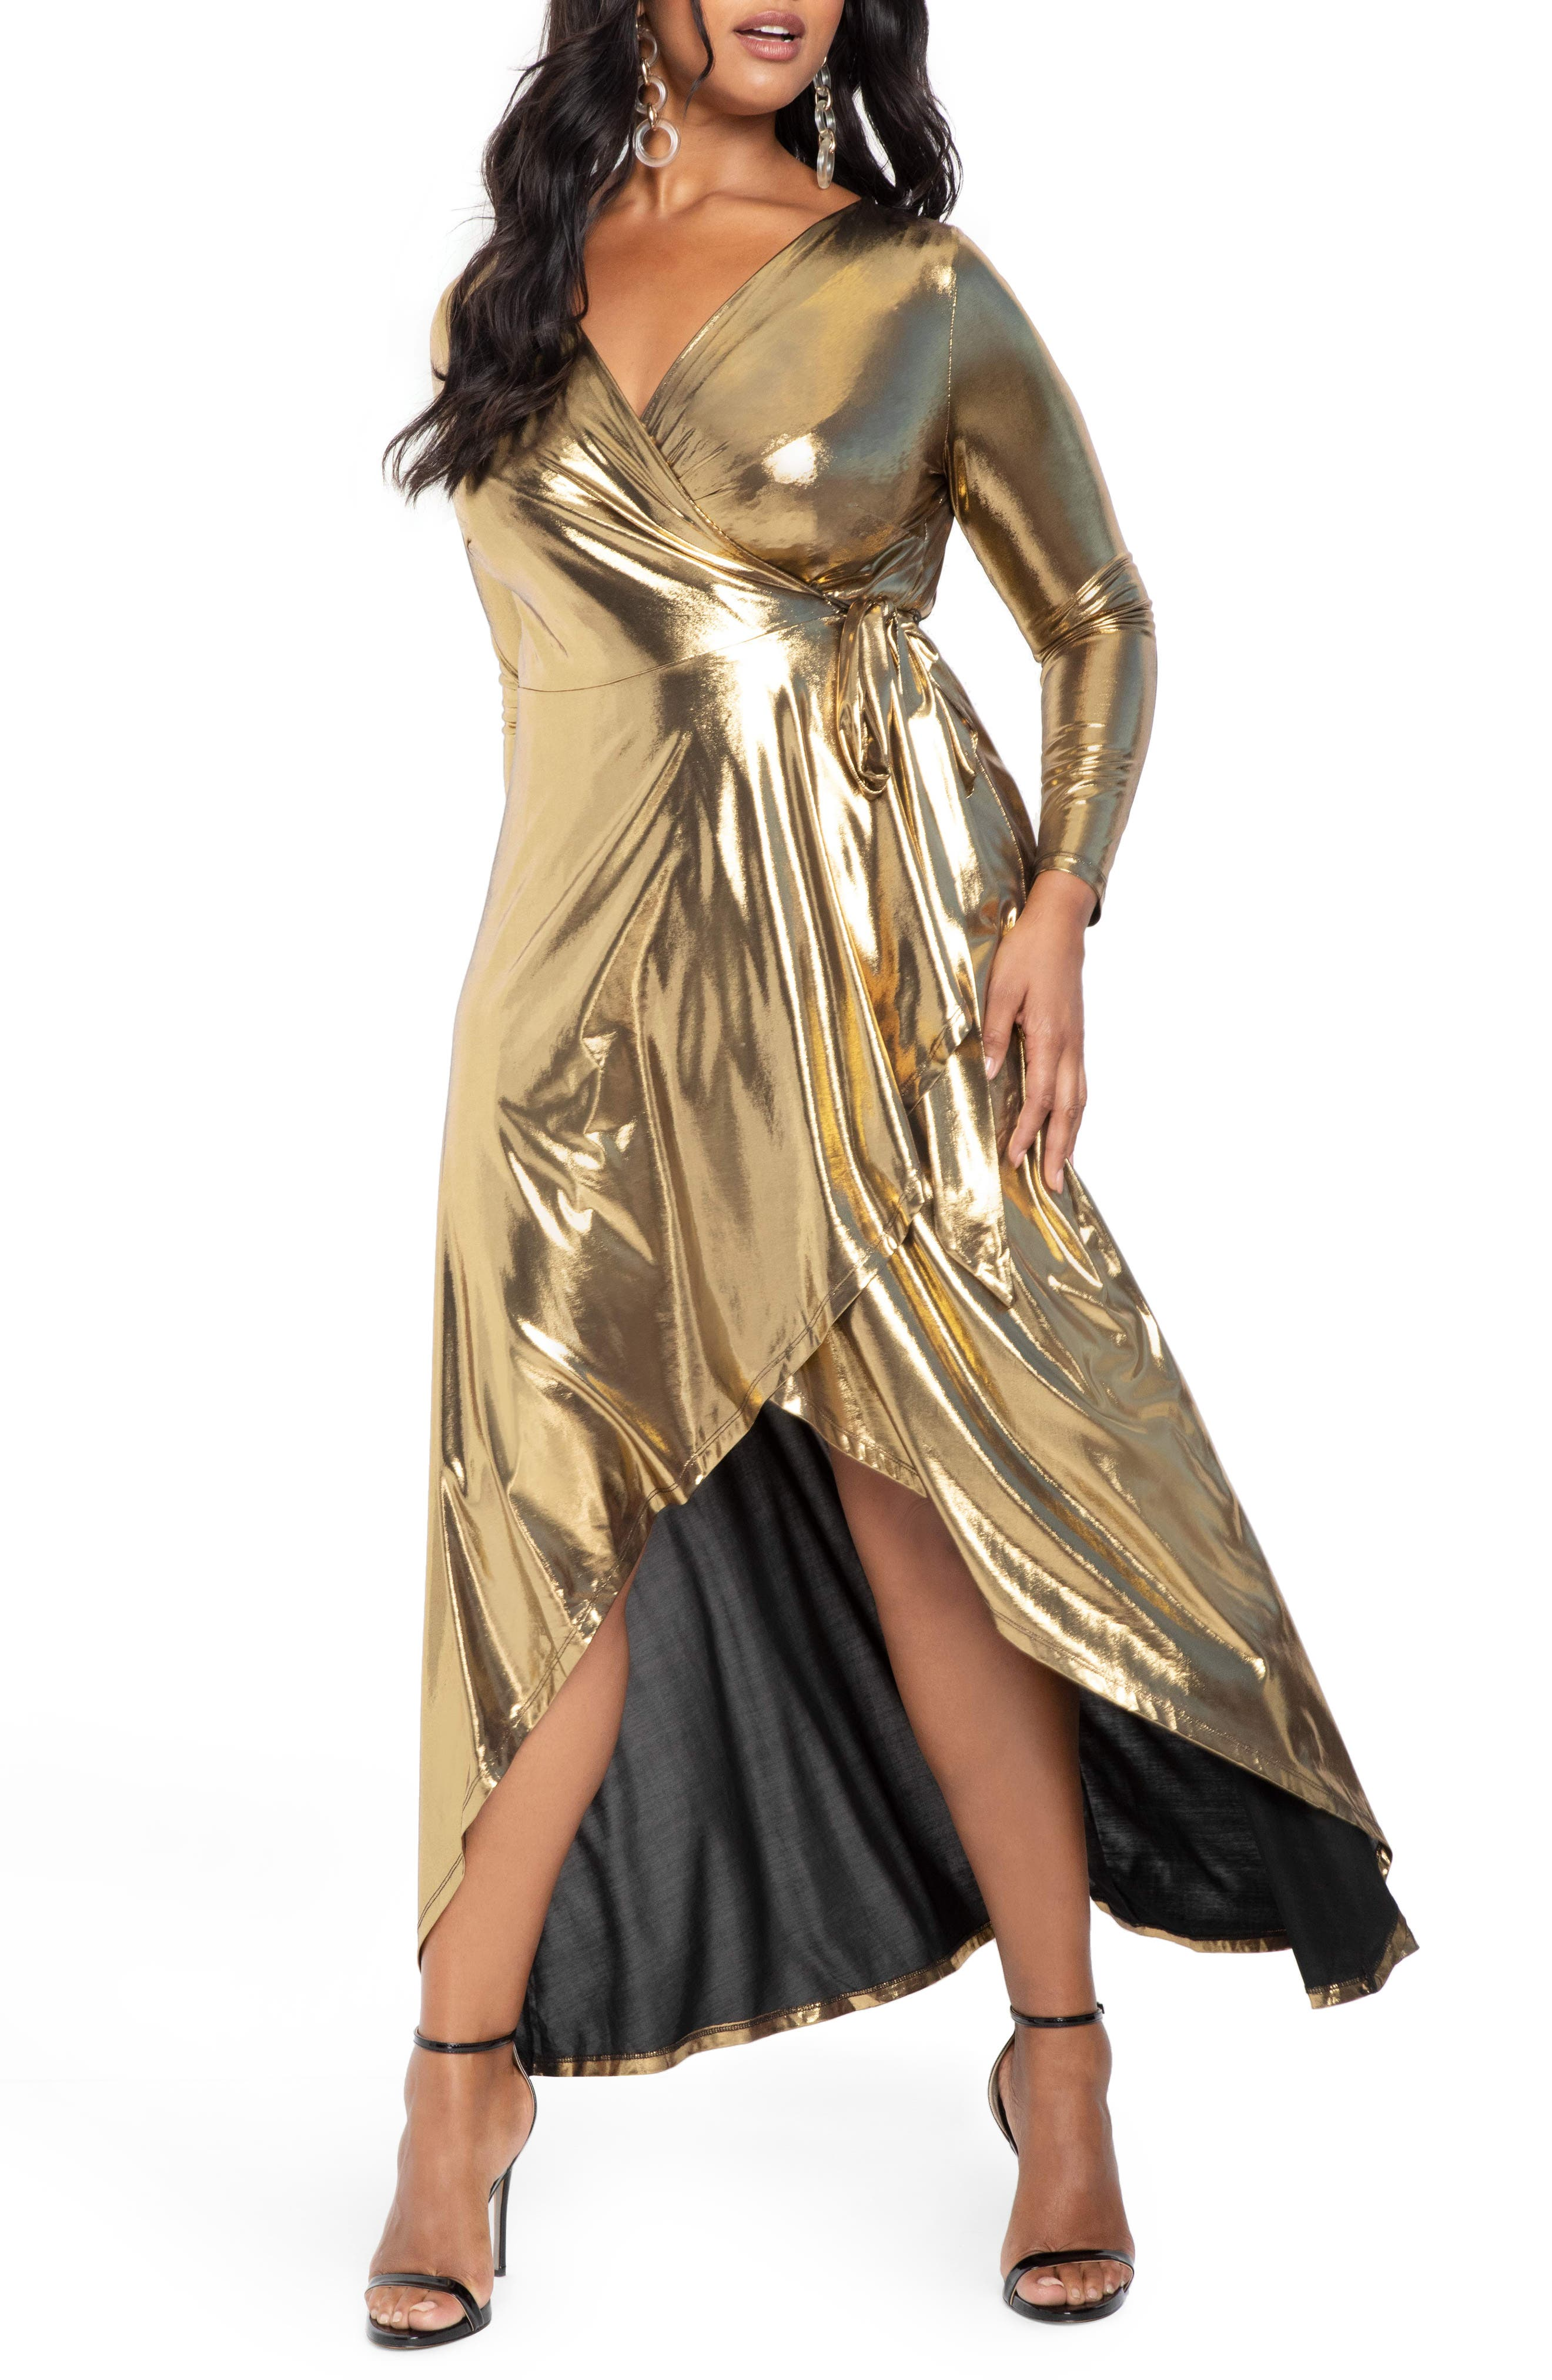 70s Prom, Formal, Evening, Party Dresses Plus Size Womens Eloquii Metallic Long Sleeve Jersey Wrap Maxi Dress $83.96 AT vintagedancer.com